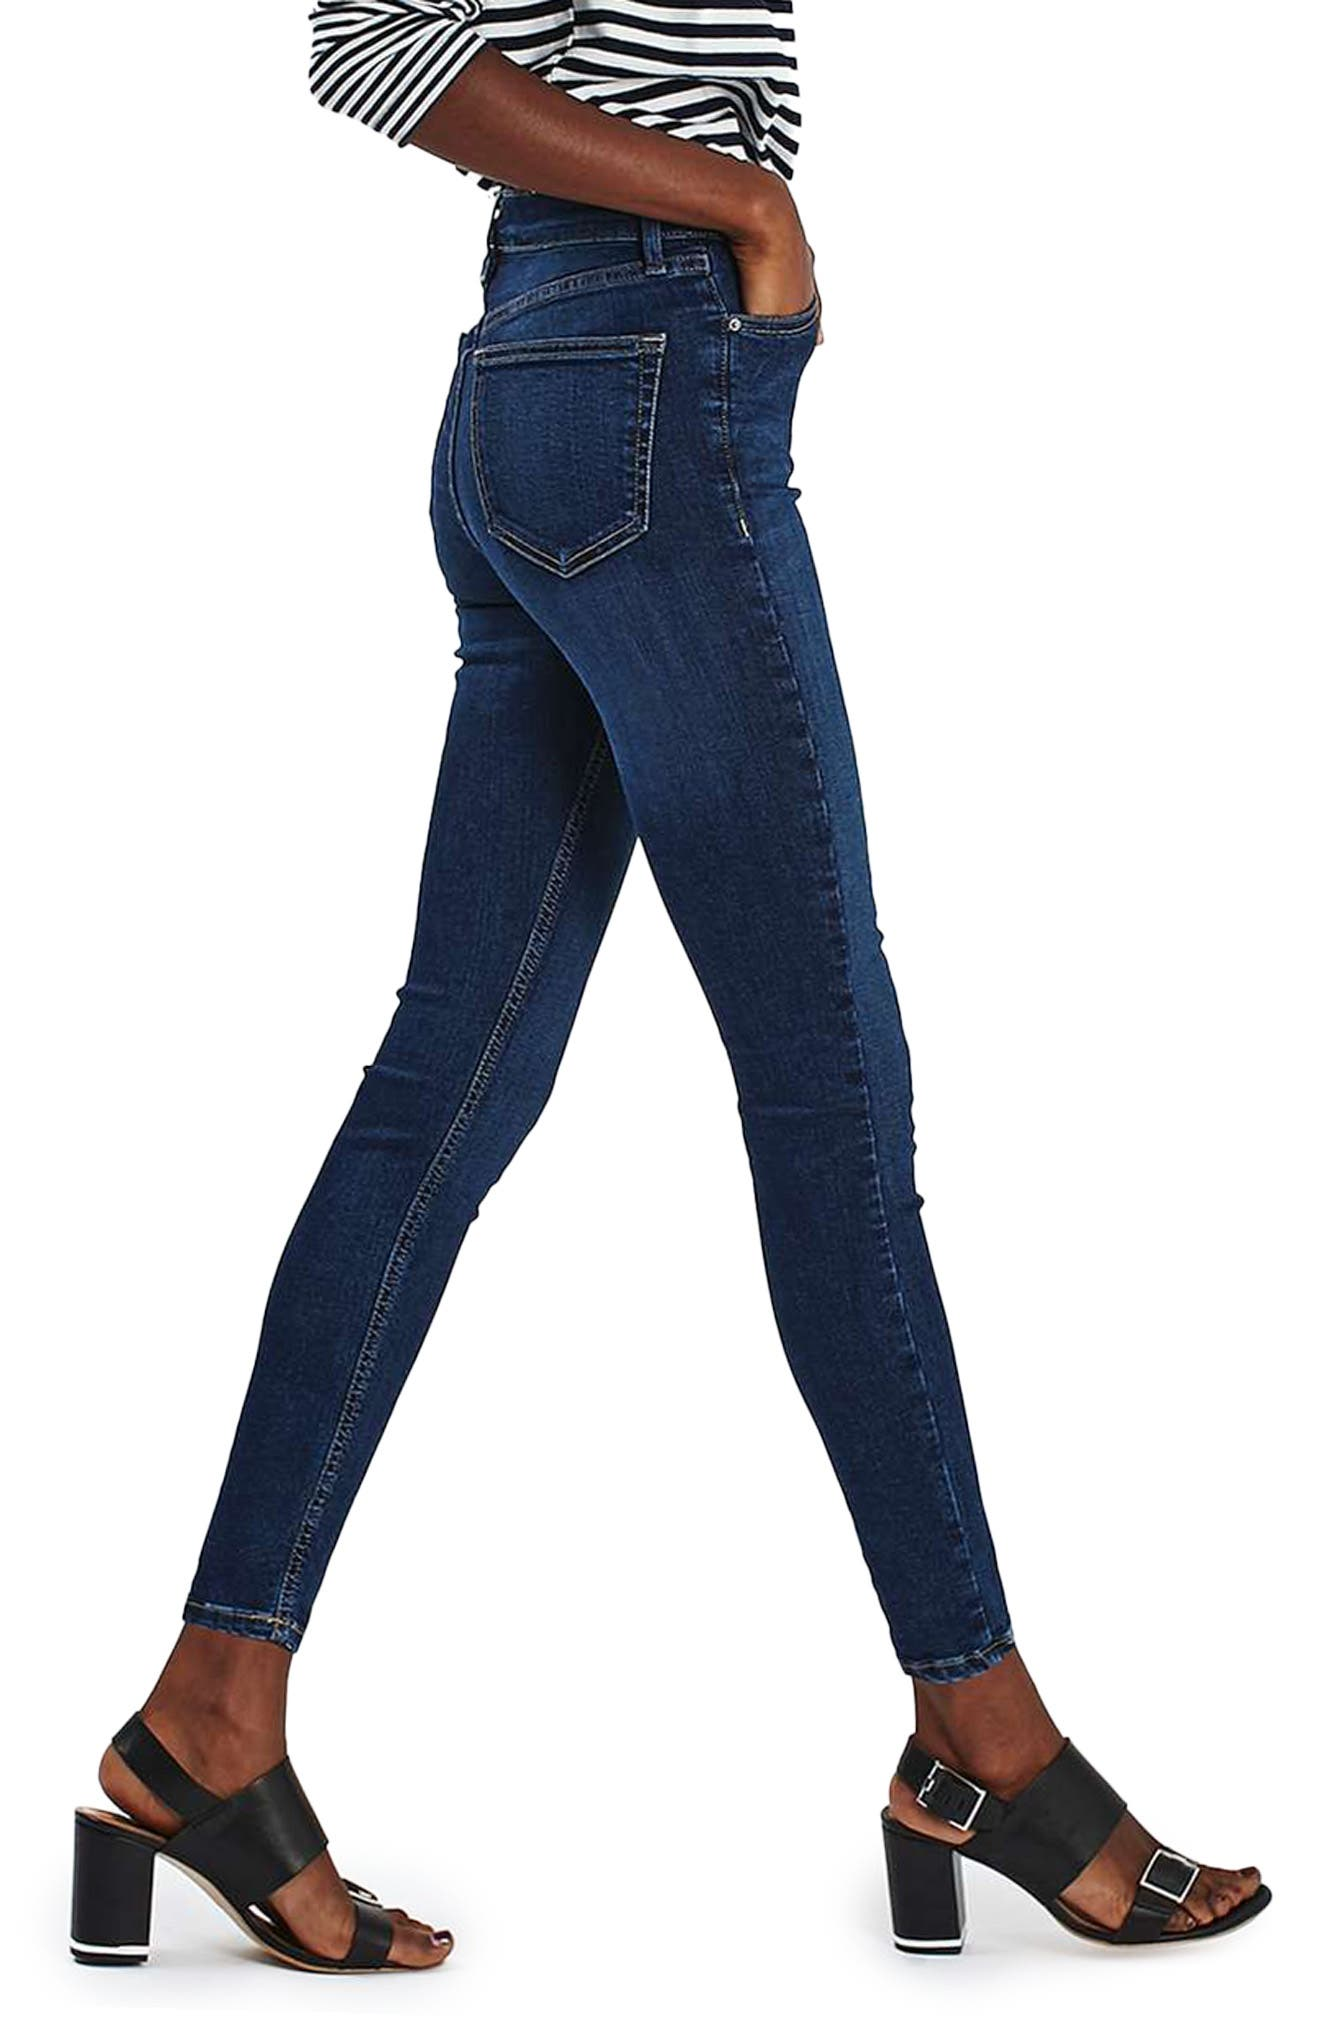 TOPSHOP, Jamie High Waist Ankle Skinny Jeans, Alternate thumbnail 3, color, 401